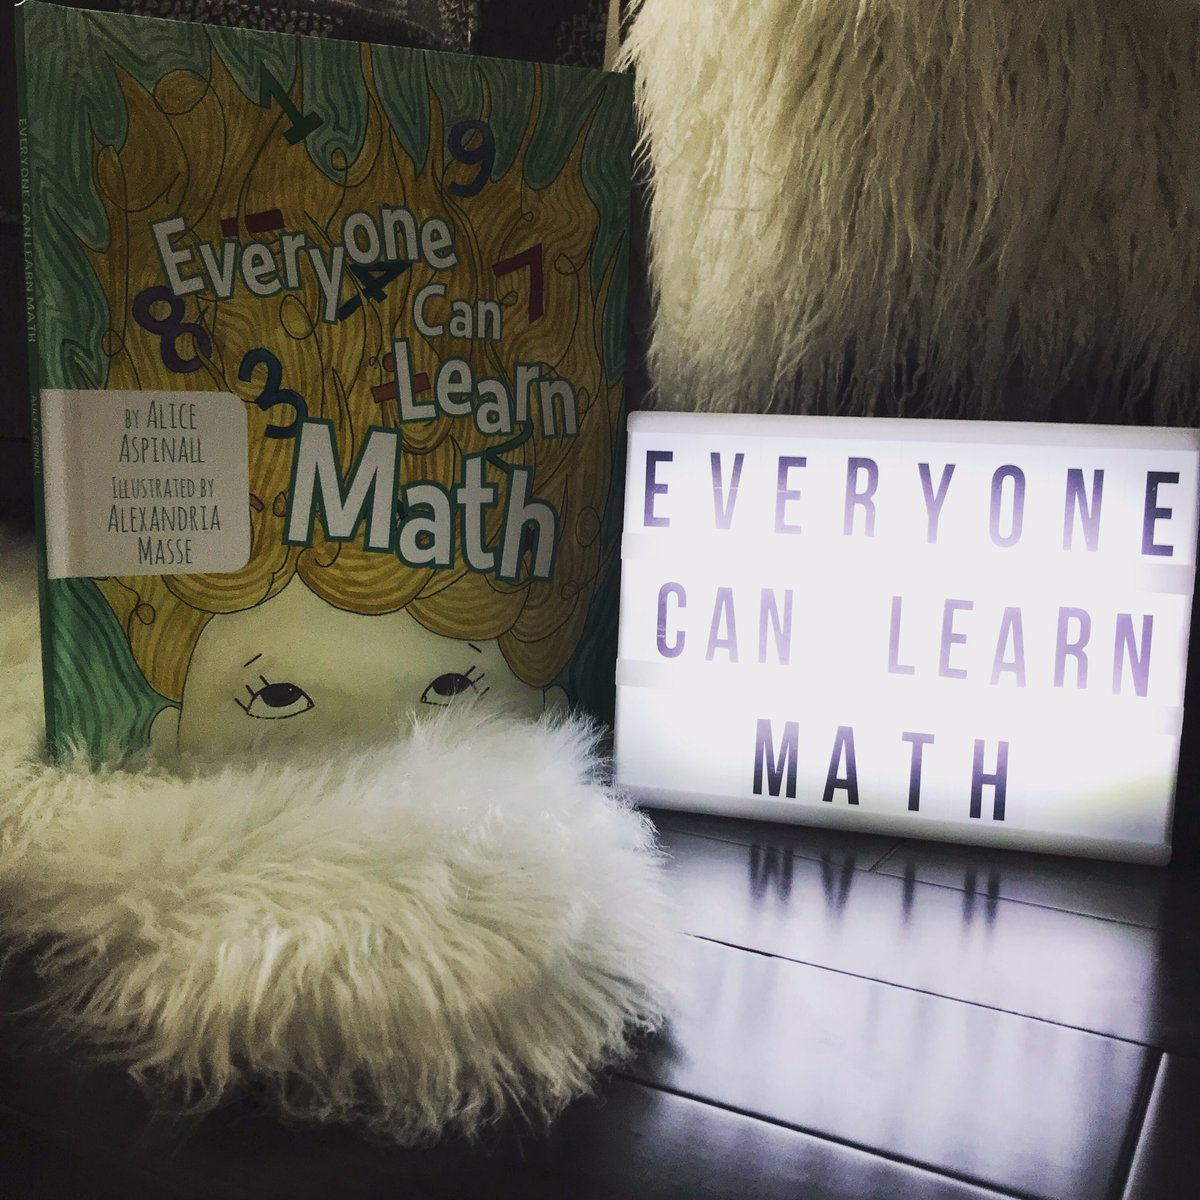 test Twitter Media - This book was a dream 15 mo ago.   This is more than just a book. More work than I ever imagined - but people share the same desire to eliminate math anxiety in children. Parents, educators, kids all want to love math.  Visit https://t.co/u8fxkuJGPd to learn more. https://t.co/LLlwckaBU8